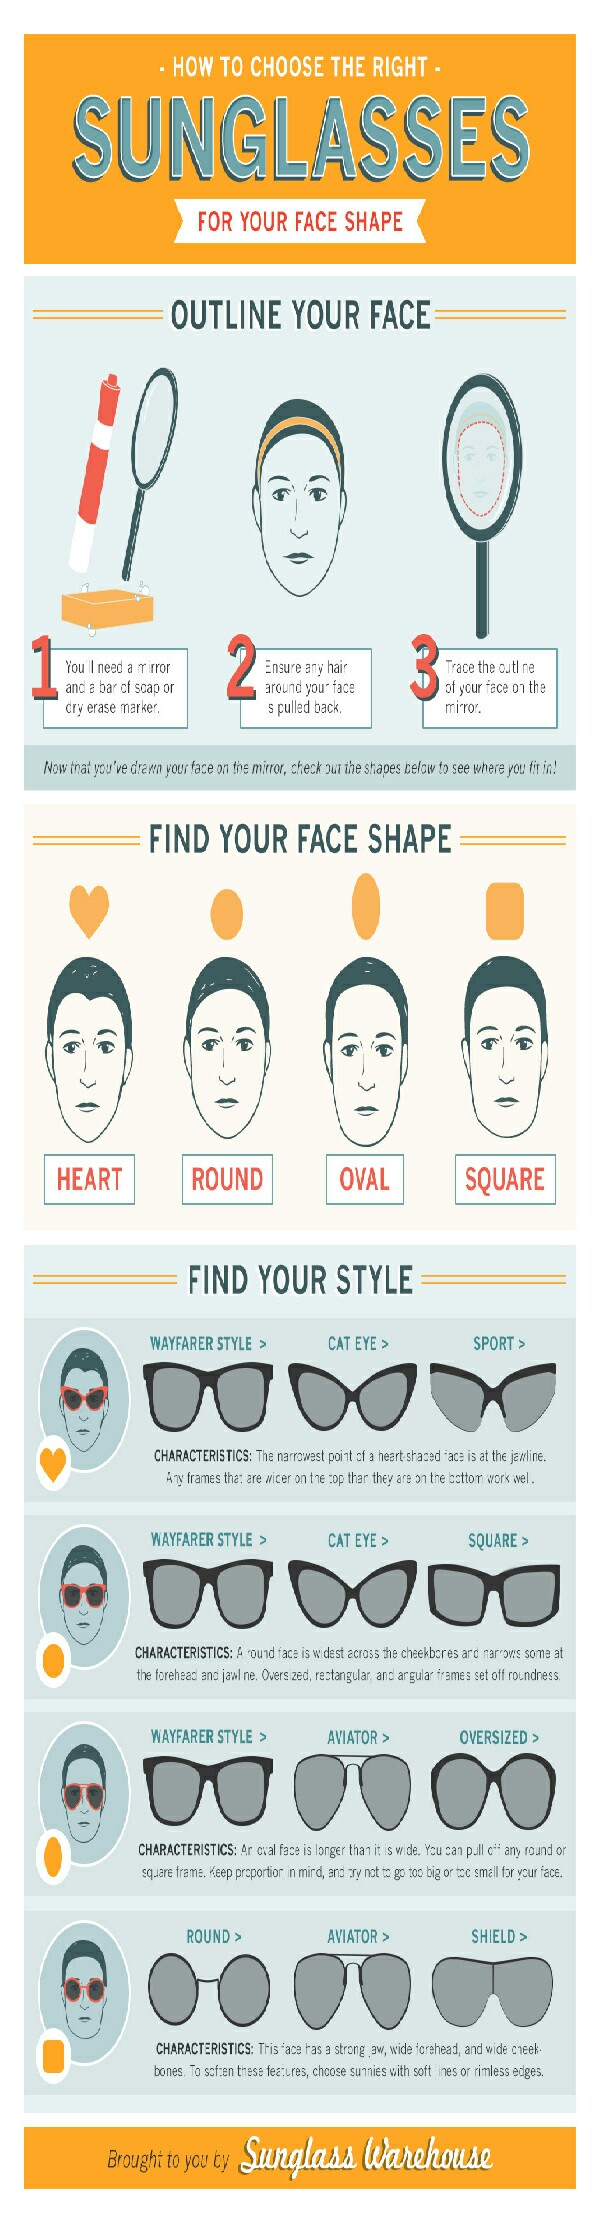 Choose the Right Sunglasses for You